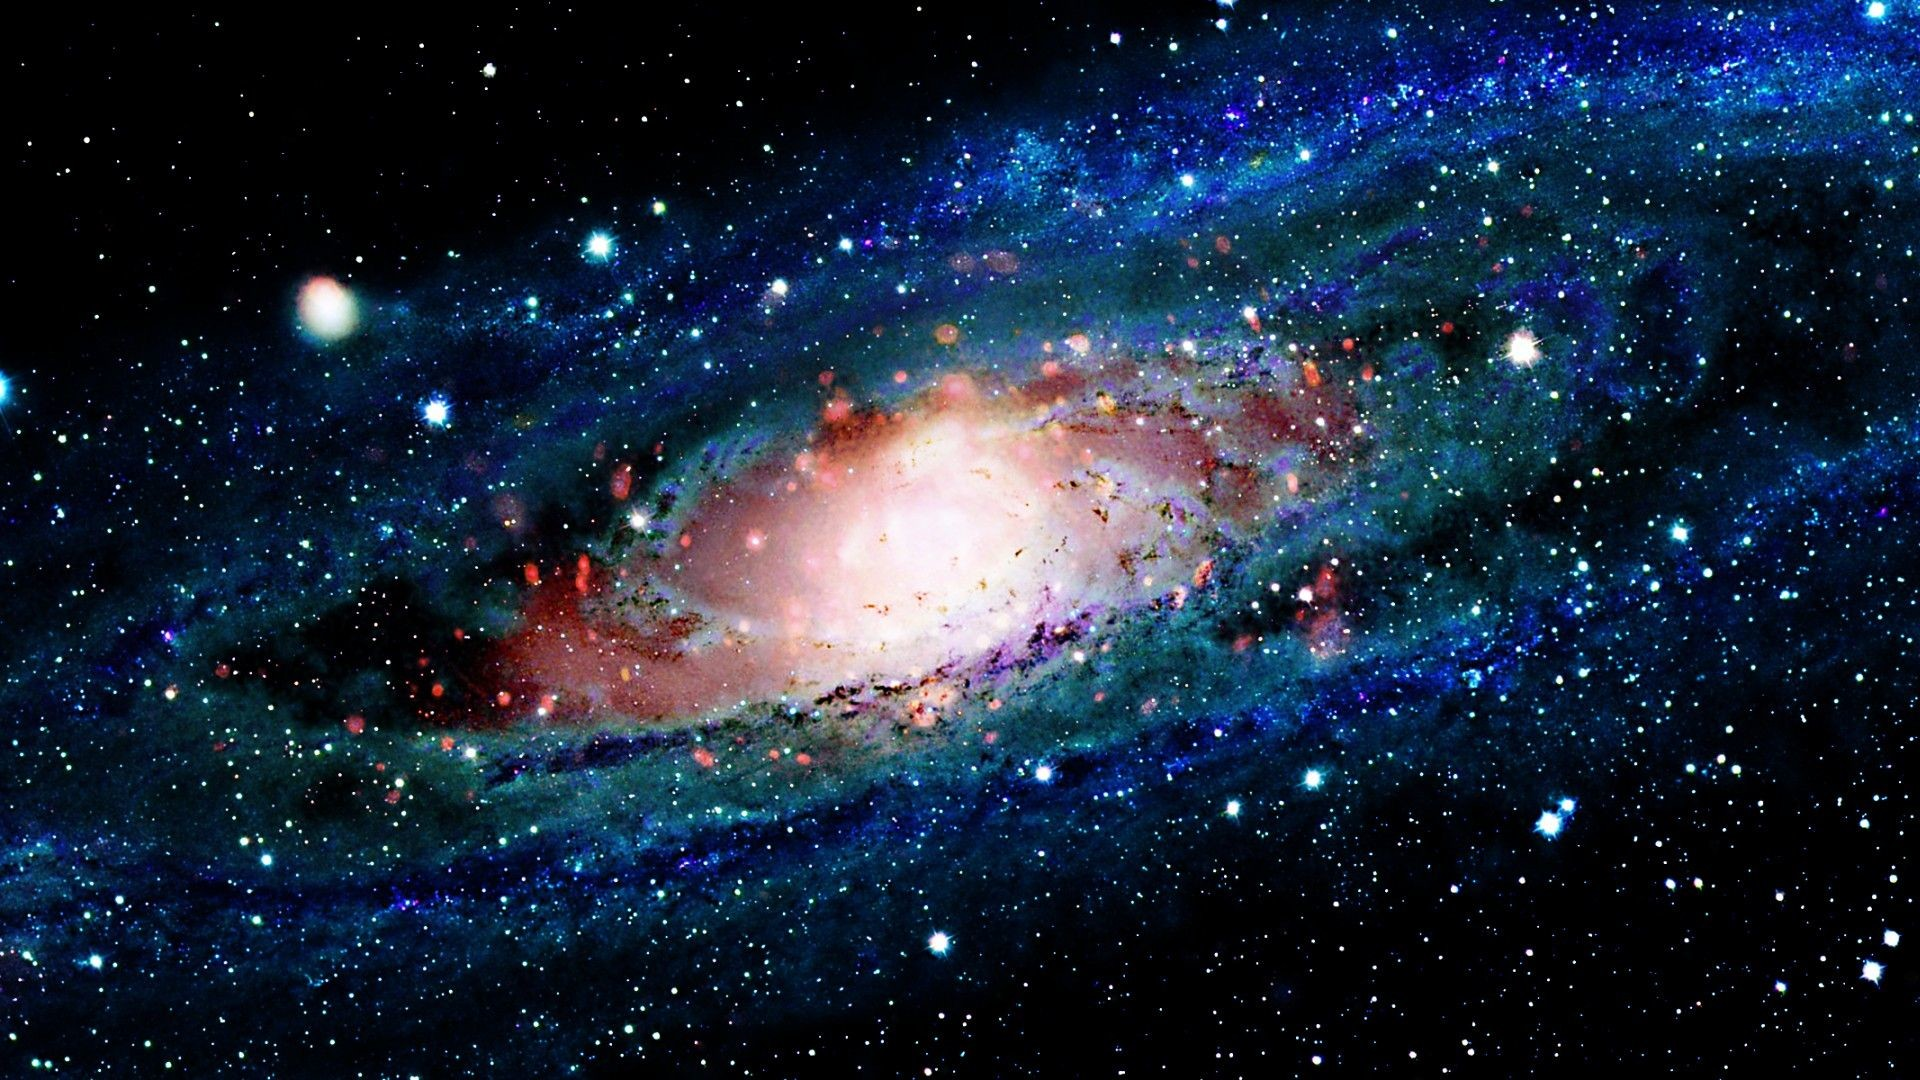 Amazing Galaxy Wallpaper Designs For Your Laptop